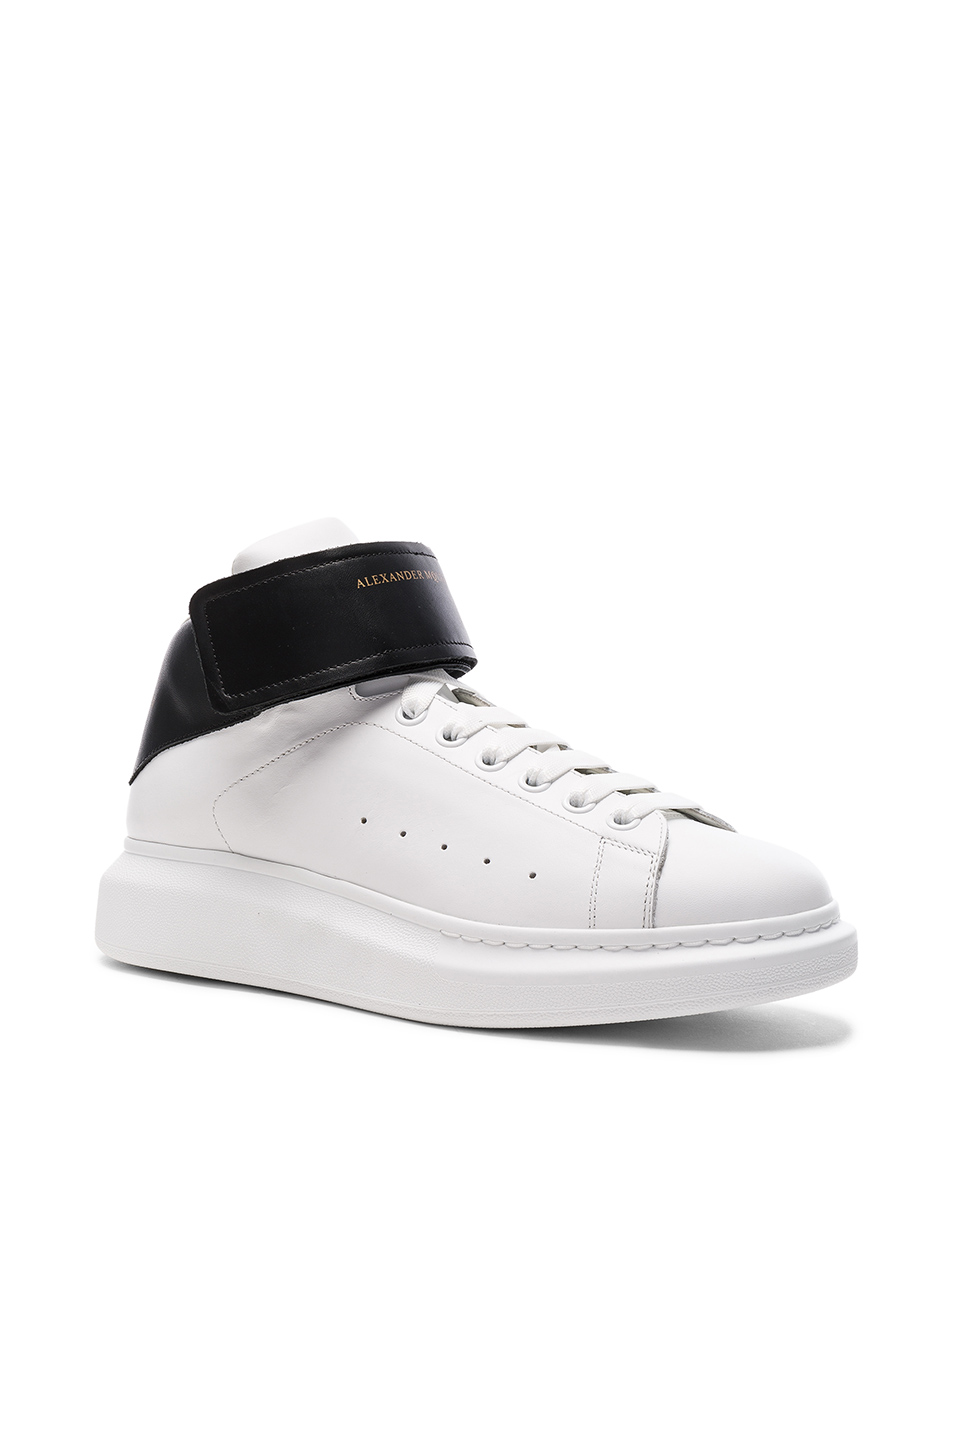 Alexander McQueen Strap Platform High Top Leather Sneakers in White,Black